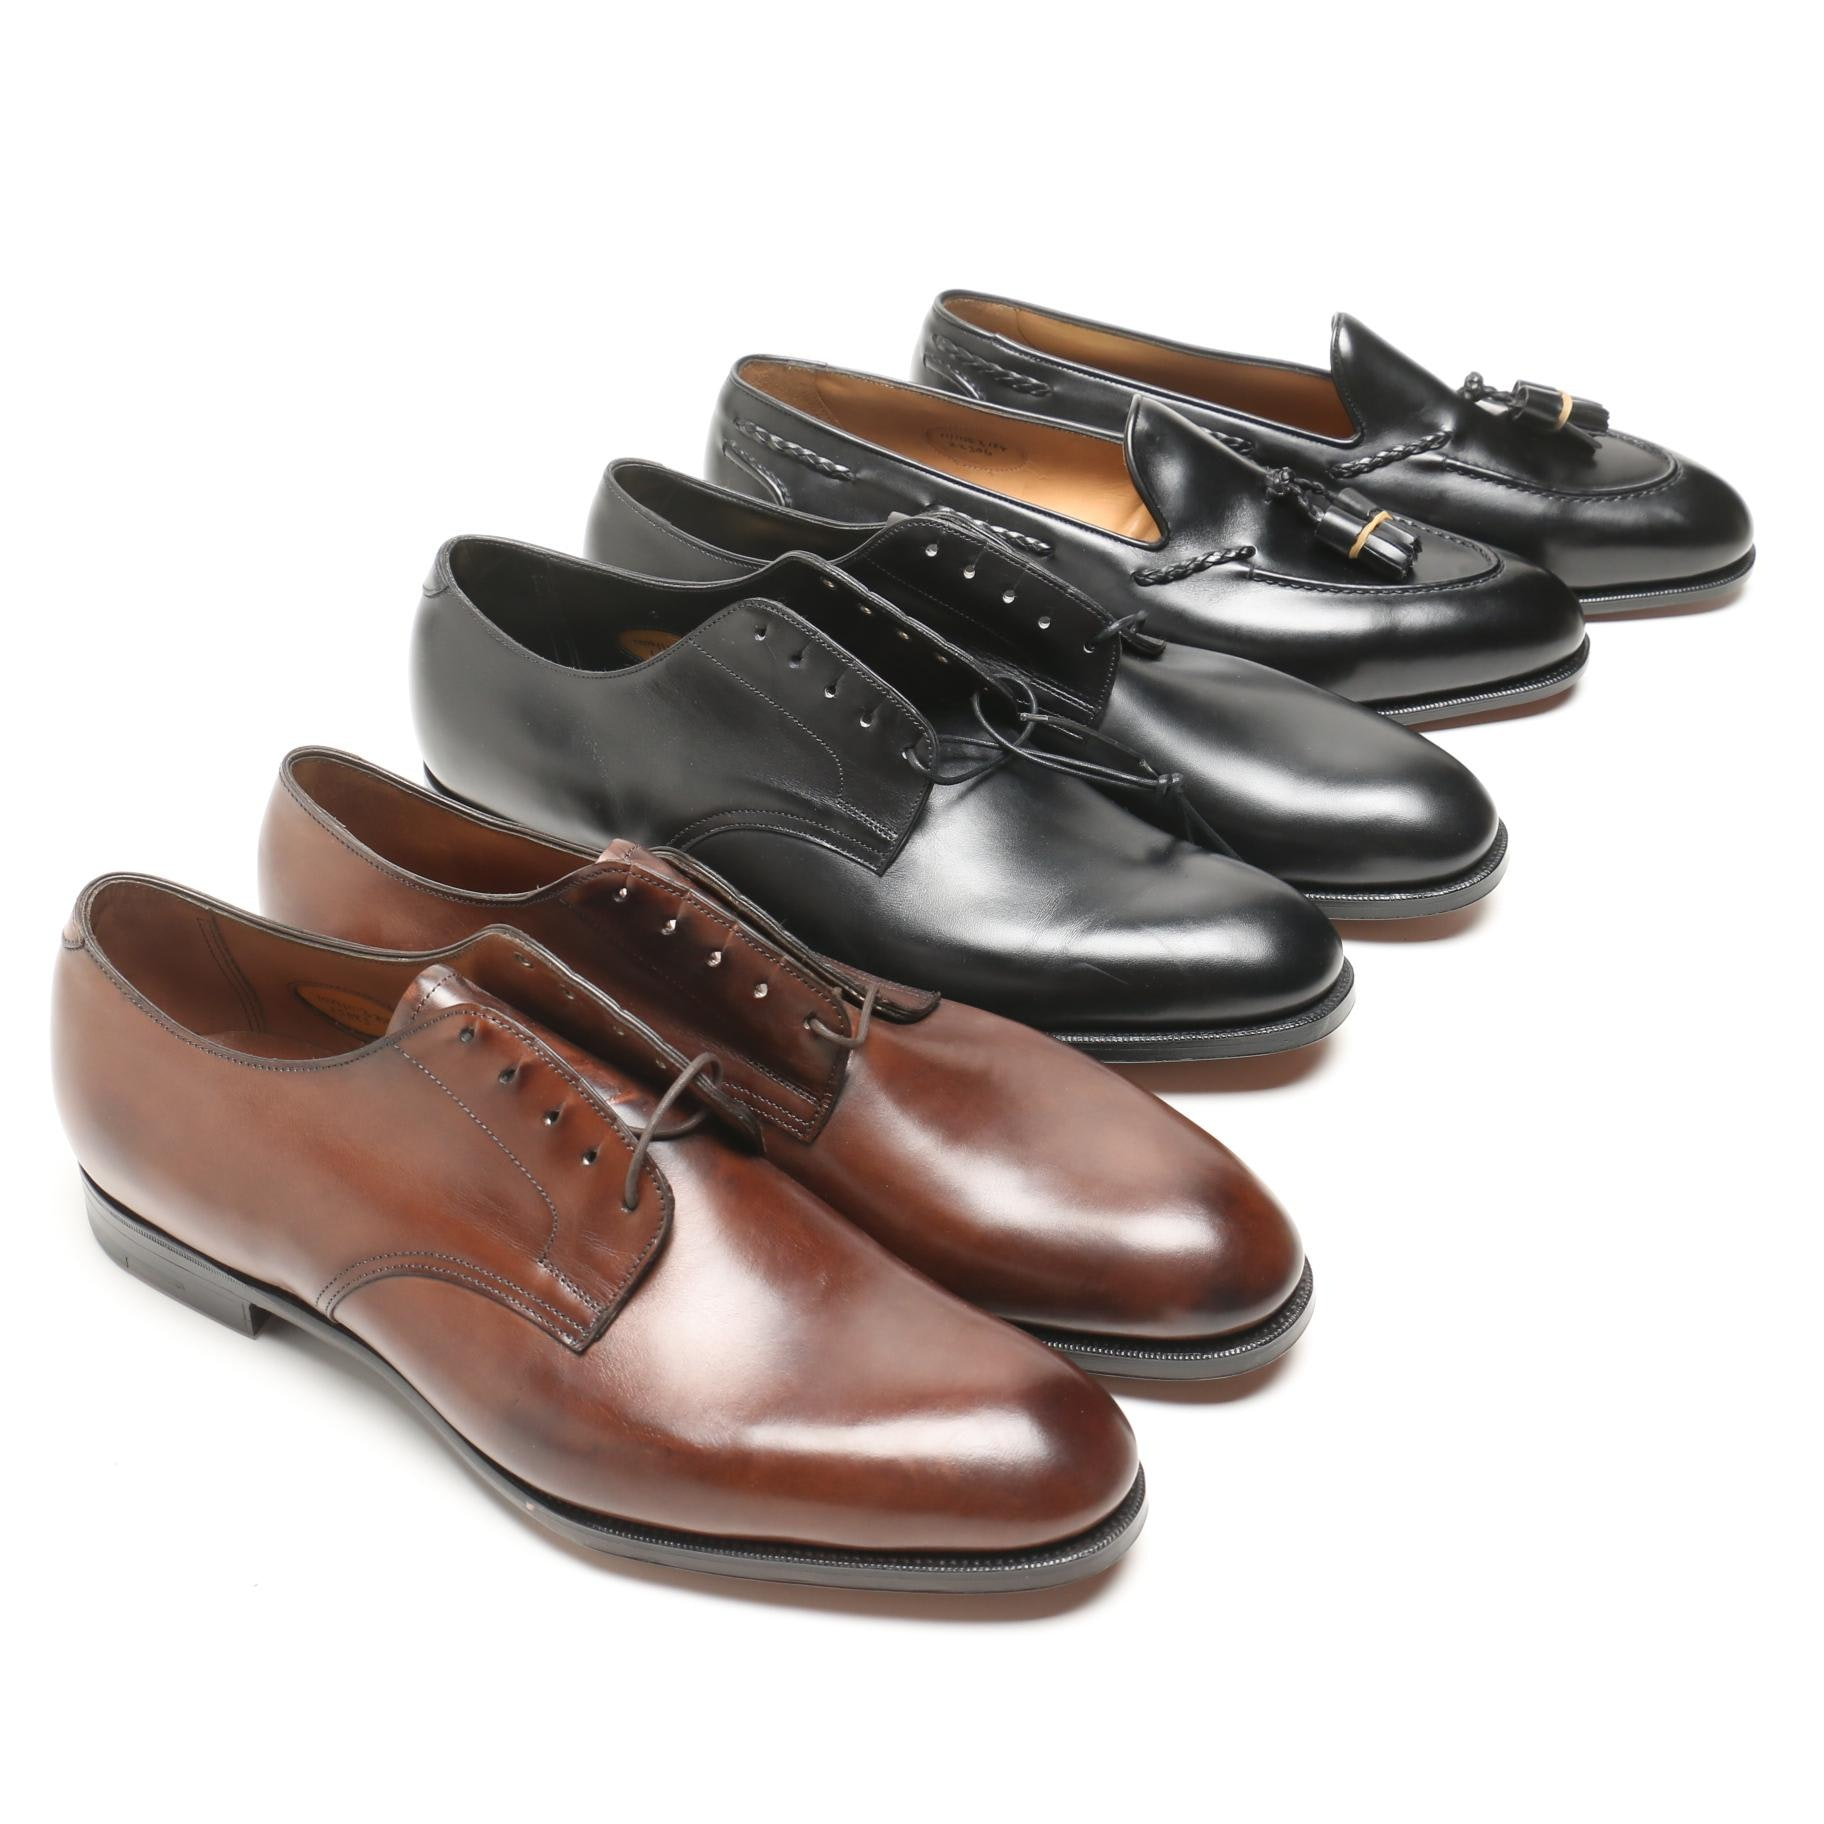 Men's Edward Green Leather Dress Shoes